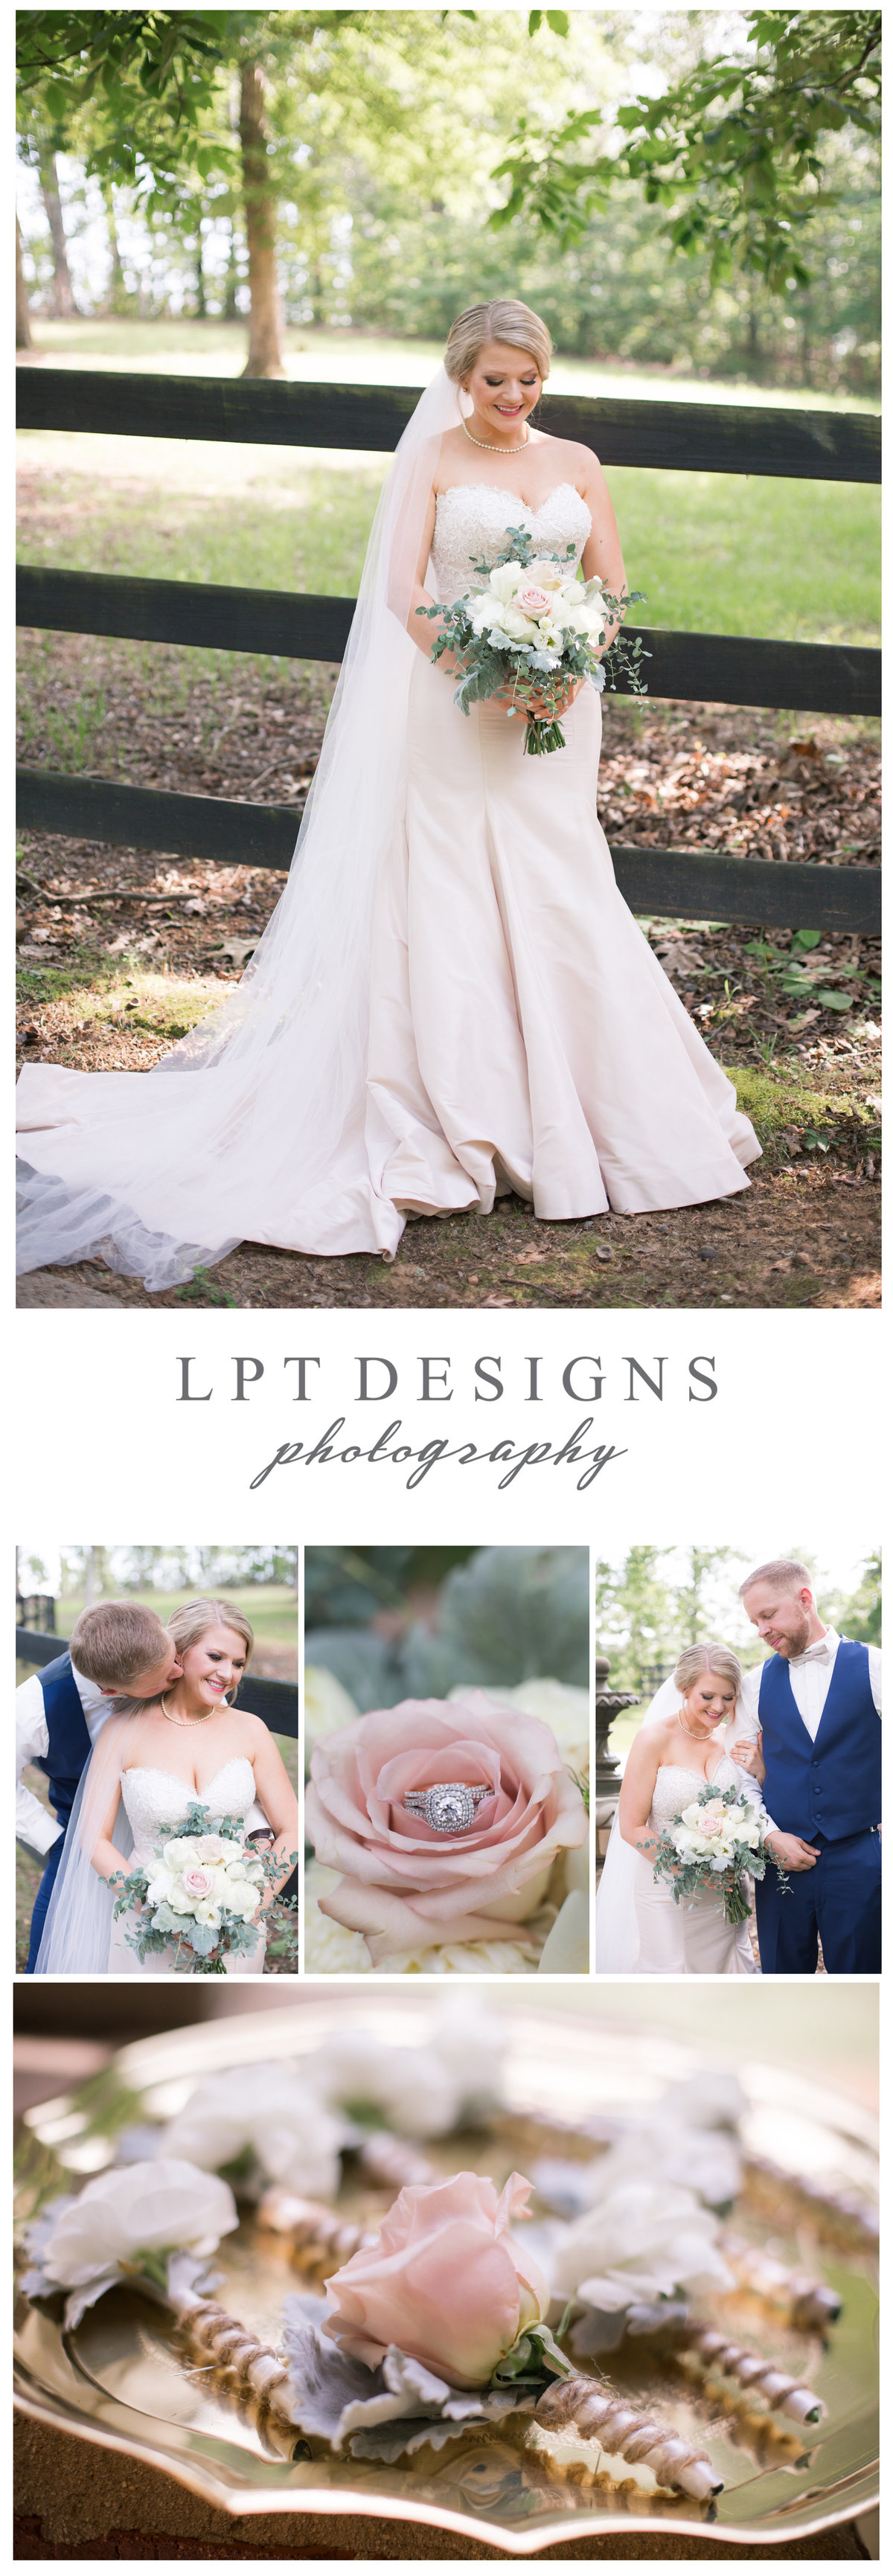 LPT Designs Photography Lydia Thrift Gadsden Alabama Fine Art Wedding Photographer AC2